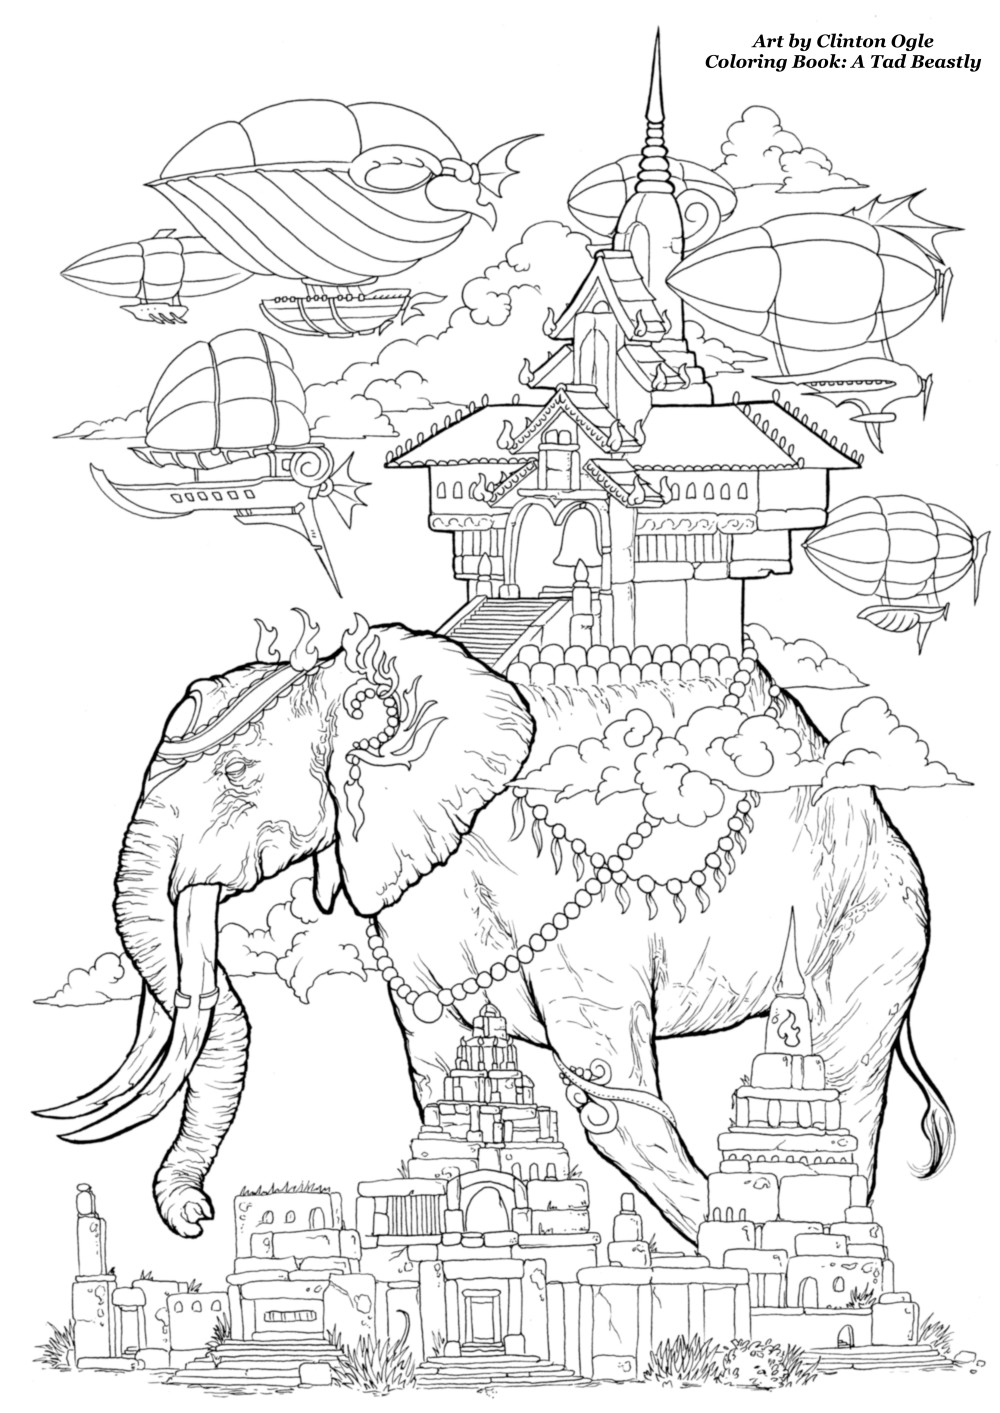 An elephant free adult coloring page from Clinton Ogle. Adult coloring book A Tad Beastly